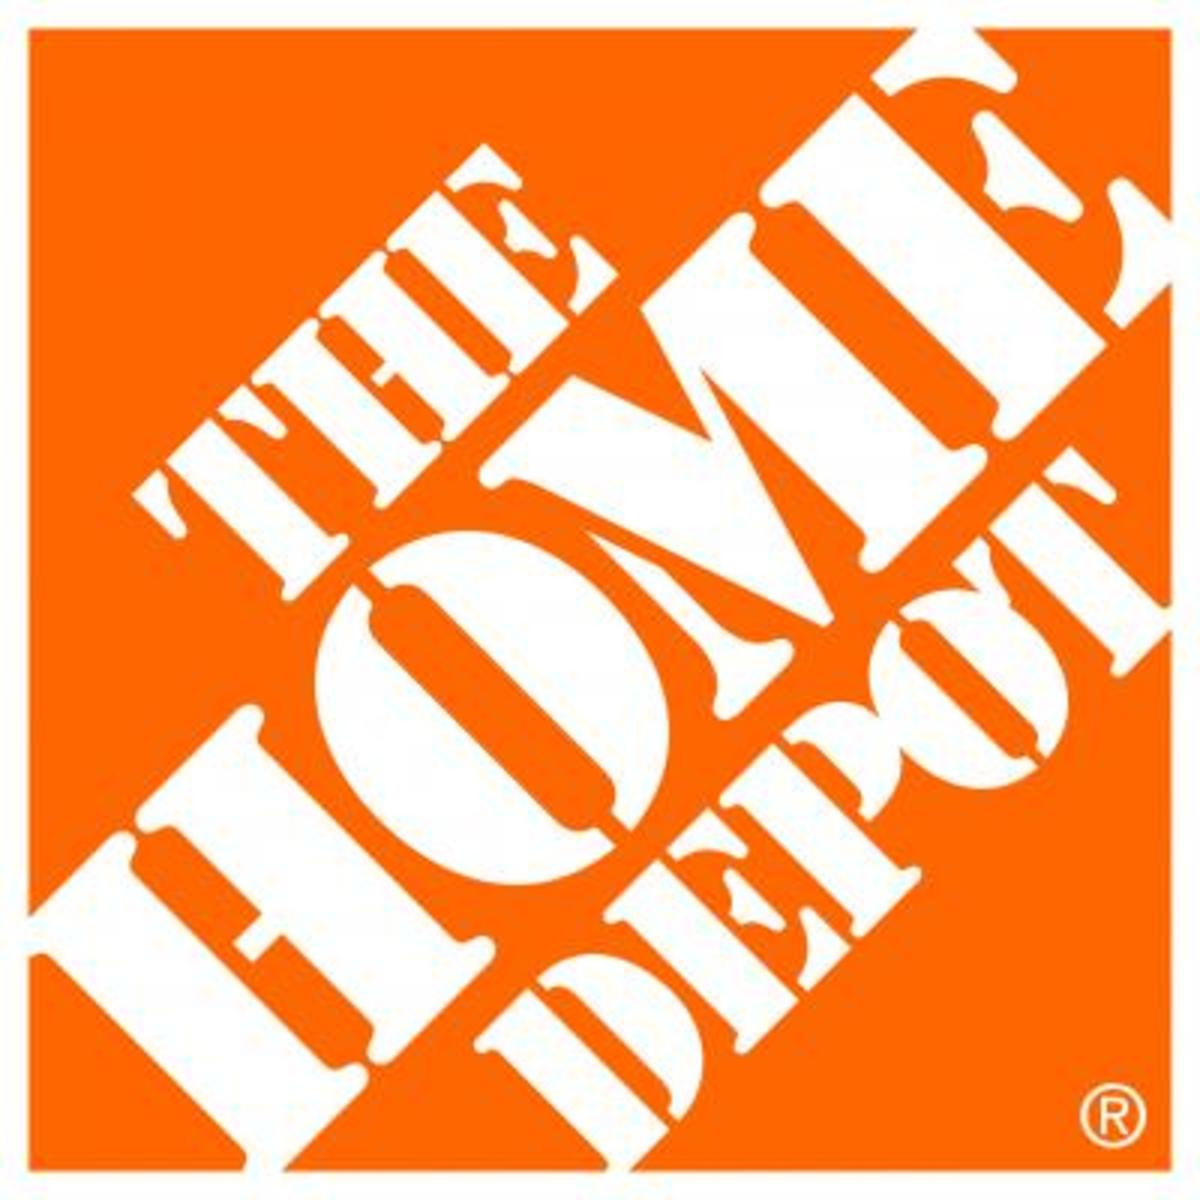 Why You Should Work at The Home Depot